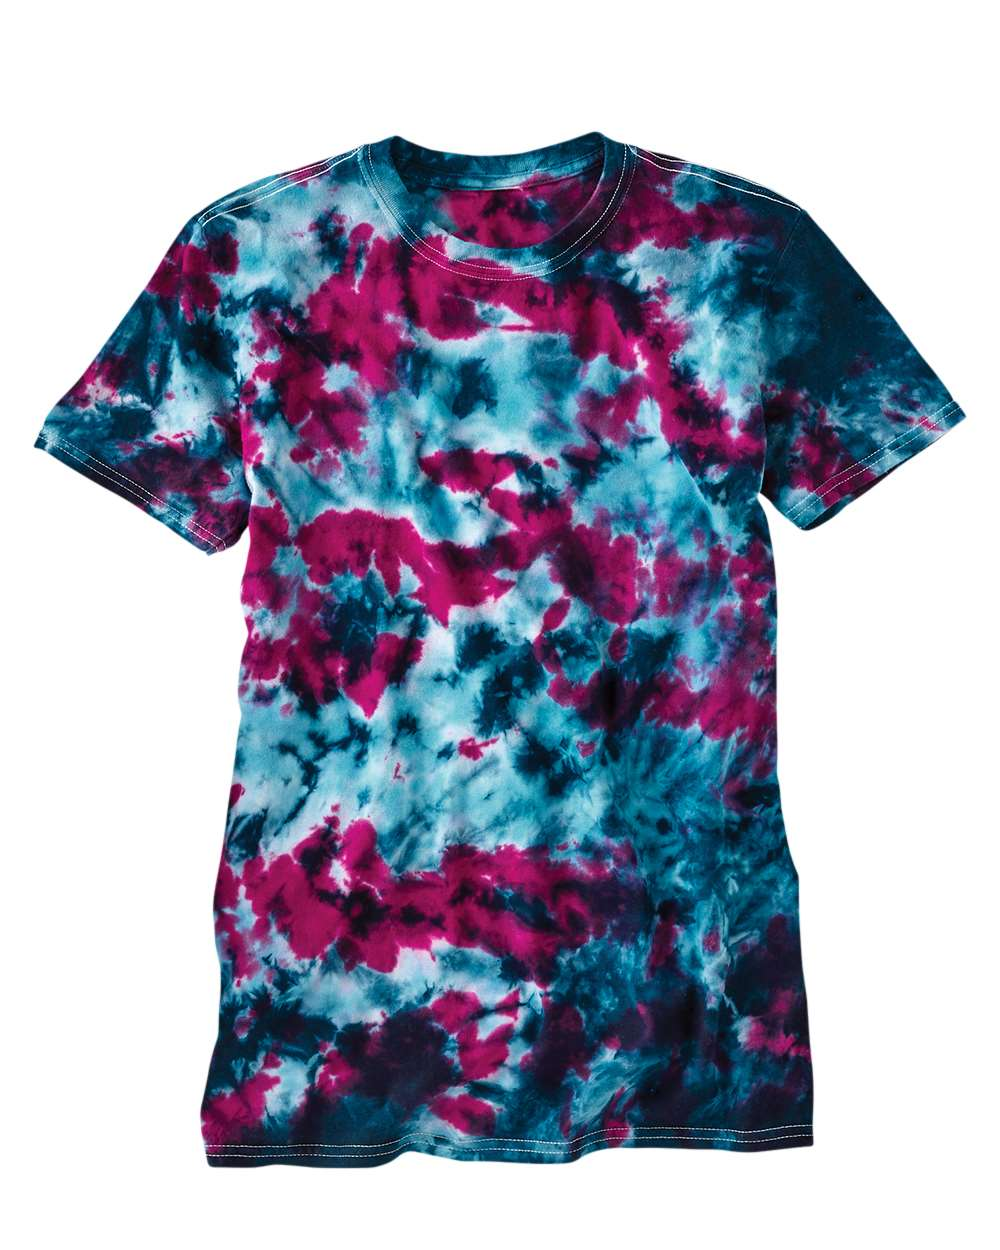 Dyenomite 640LM - LaMer Over-Dyed Crinkle Tie Dye T-Shirt